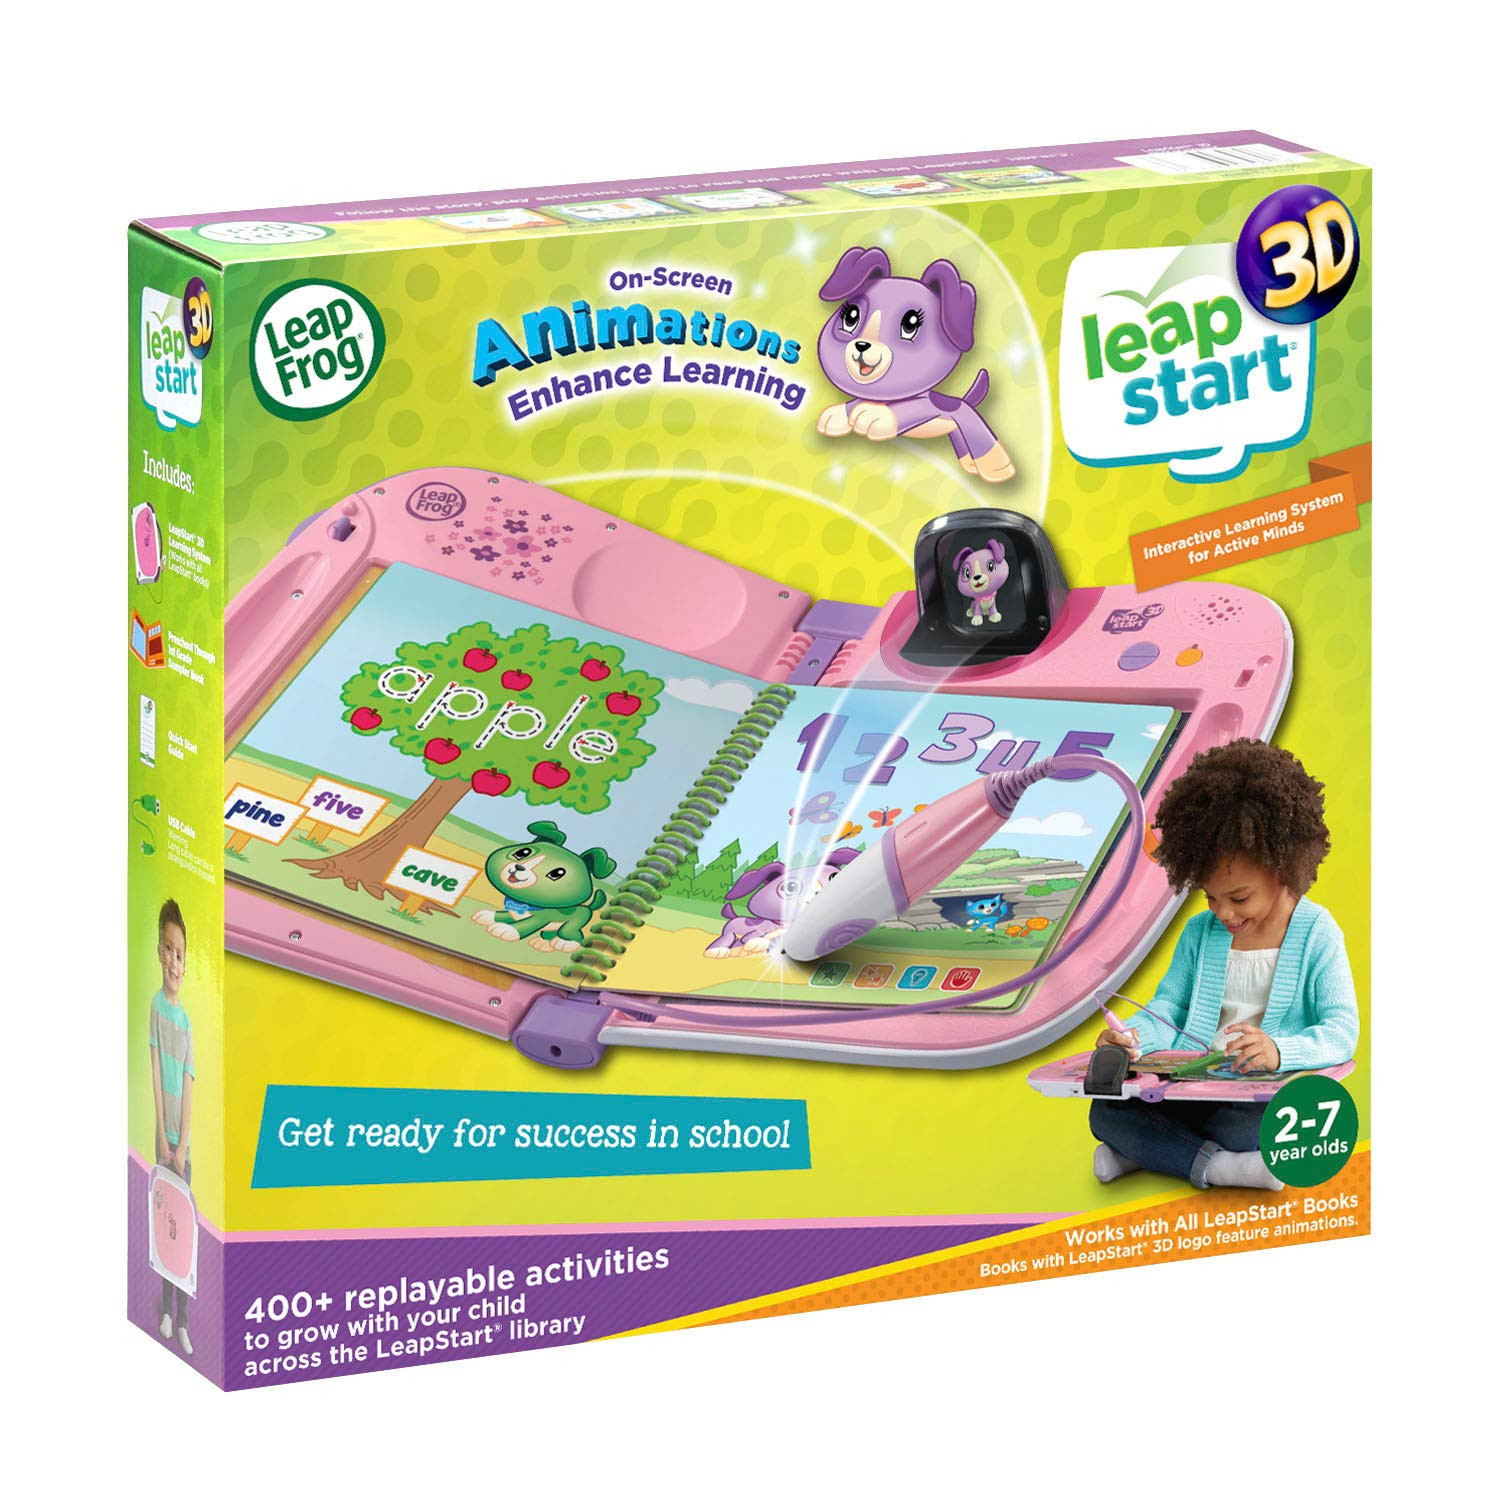 LeapFrog LeapStart 3D Interactive Learning System Amazon Exclusive, Violet by LeapFrog (Image #6)